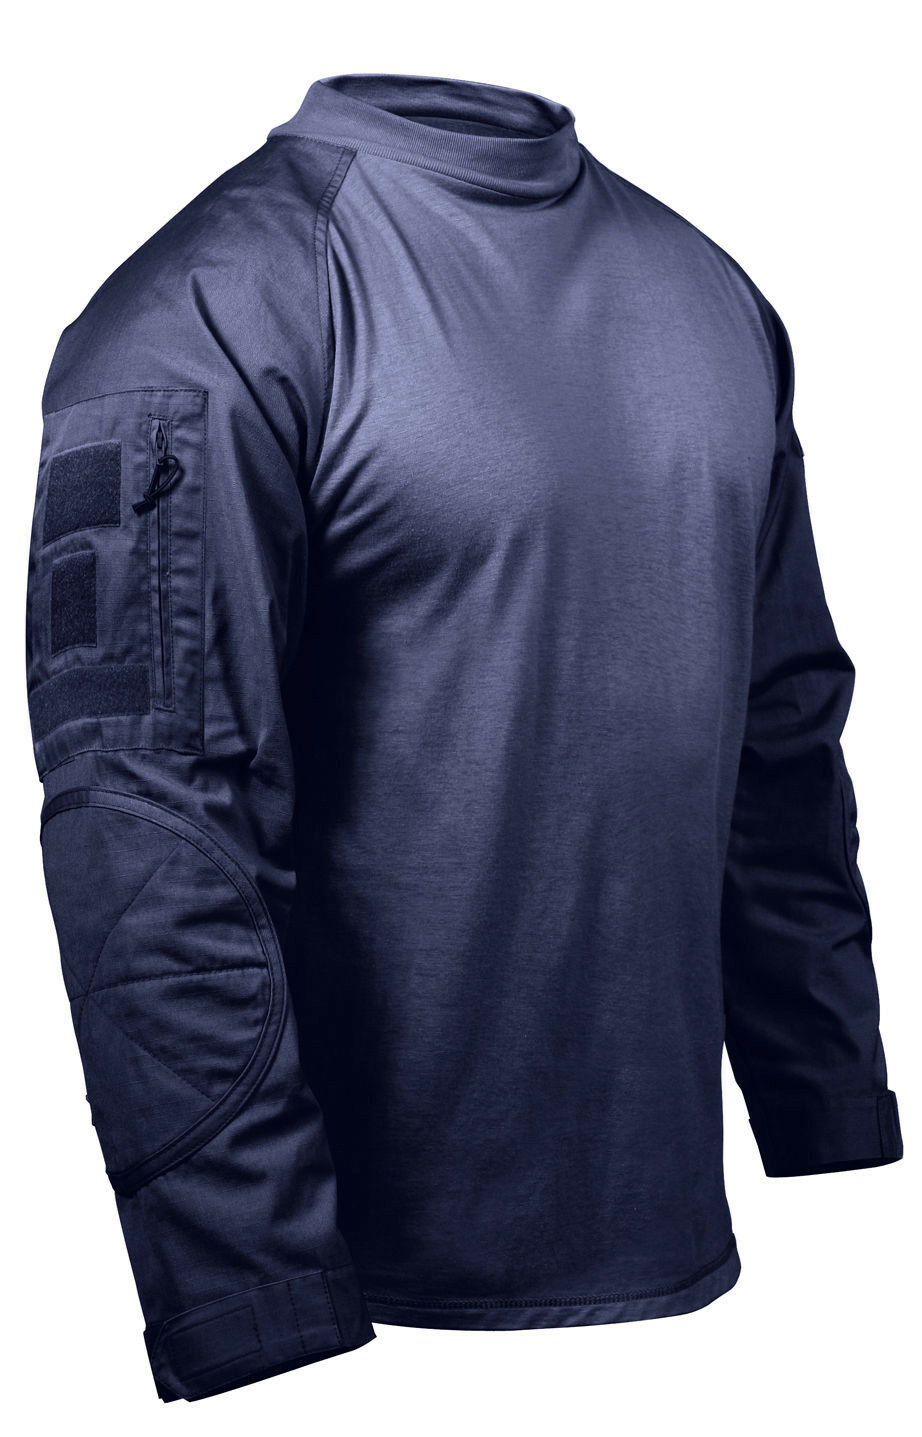 Combat shirt navy bluee tactical style various sizes redhco 90035